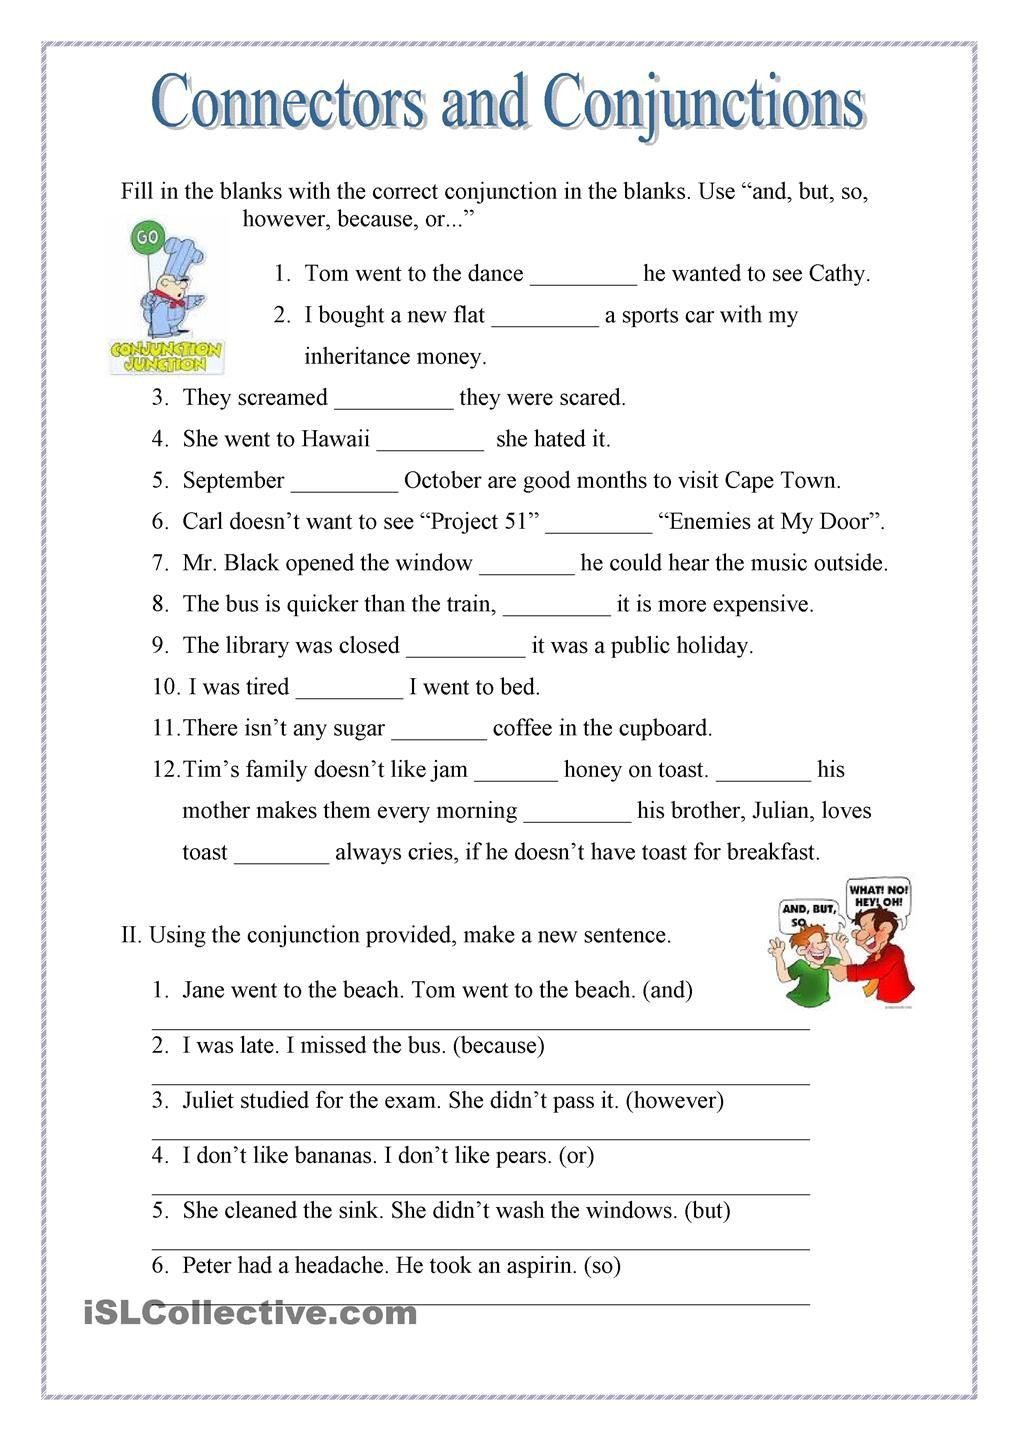 Conjunction Worksheet 5th Grade Conjuctions and Connectors